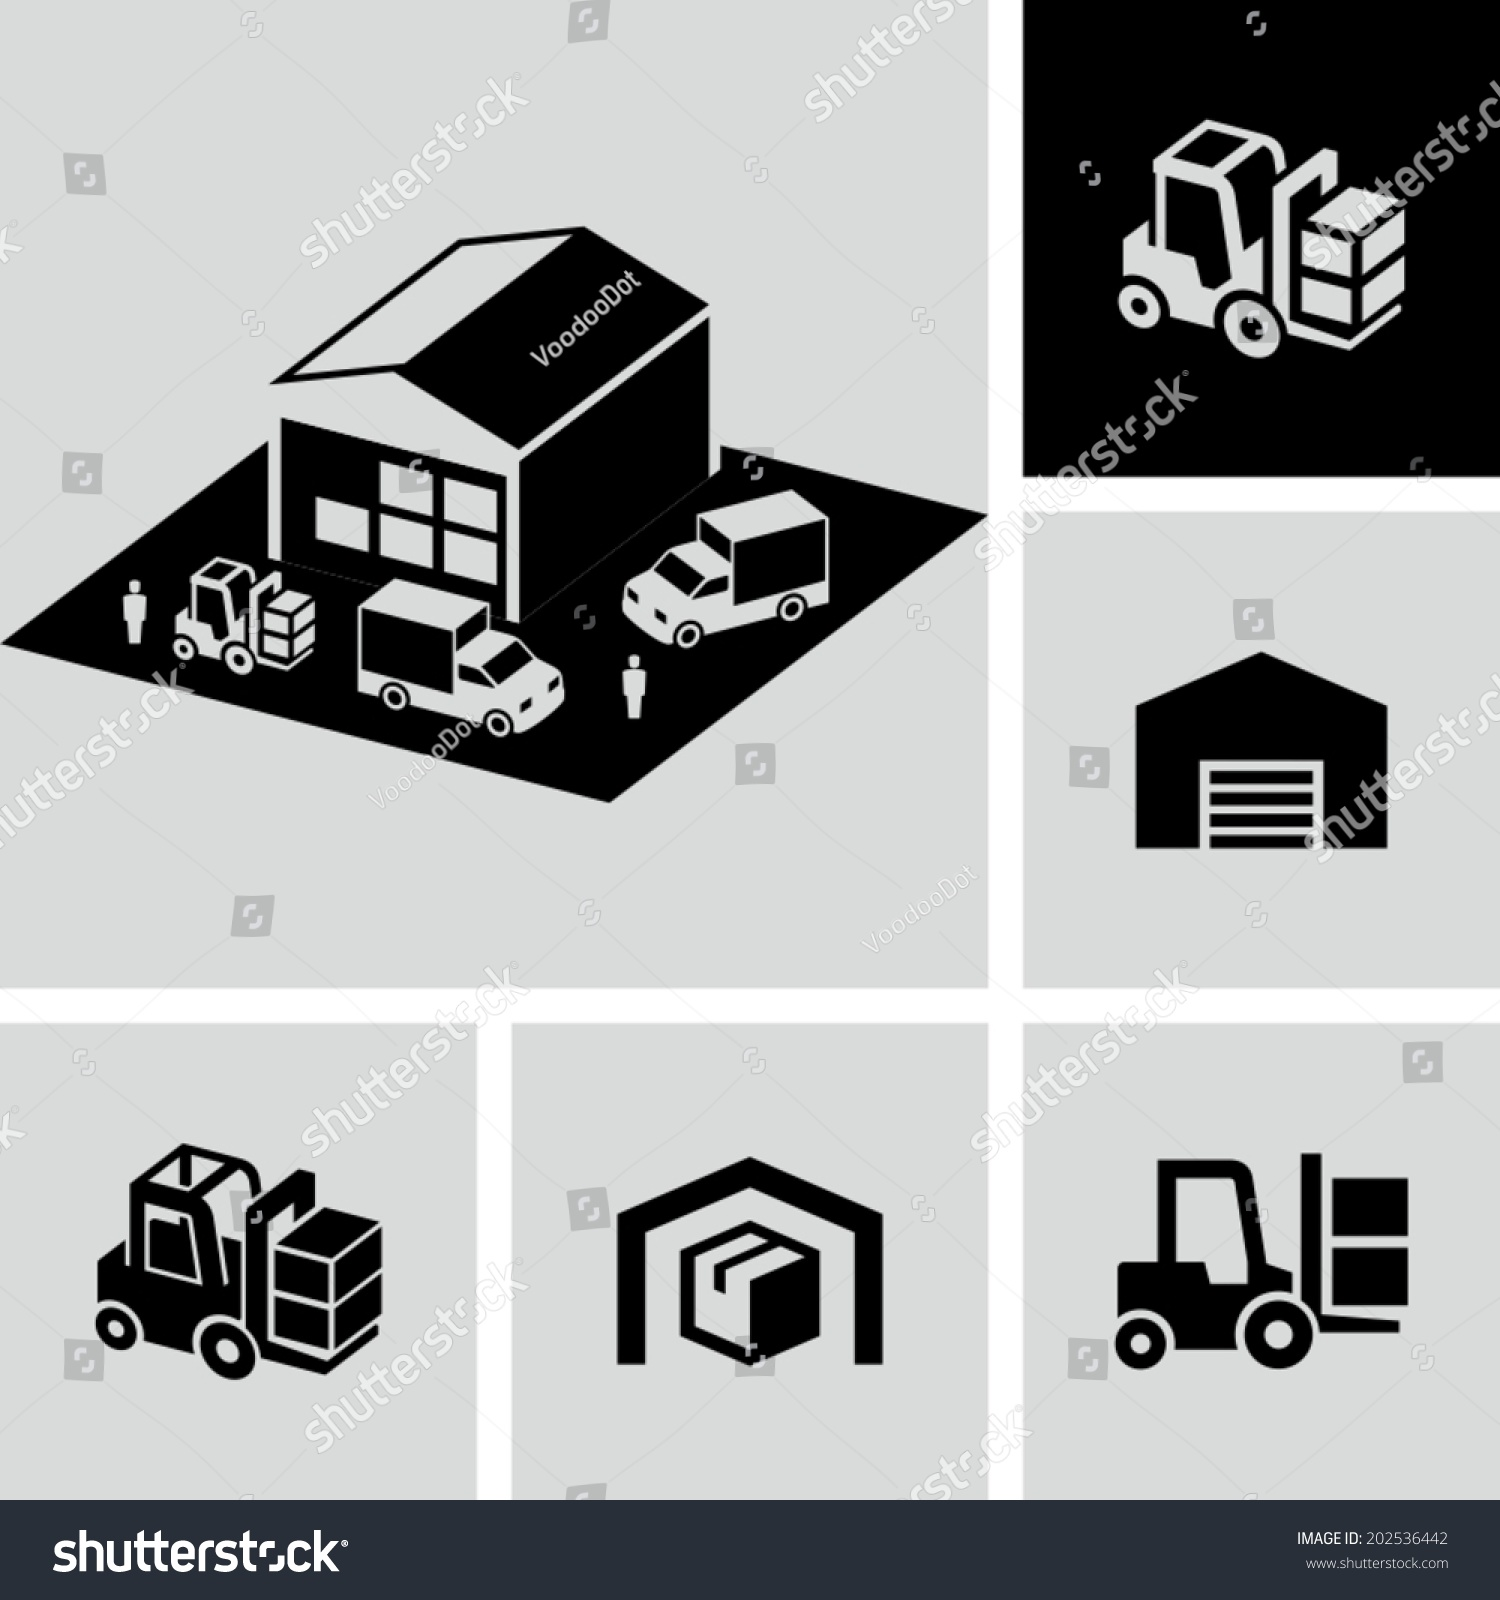 delivery truck icon vector - photo #33